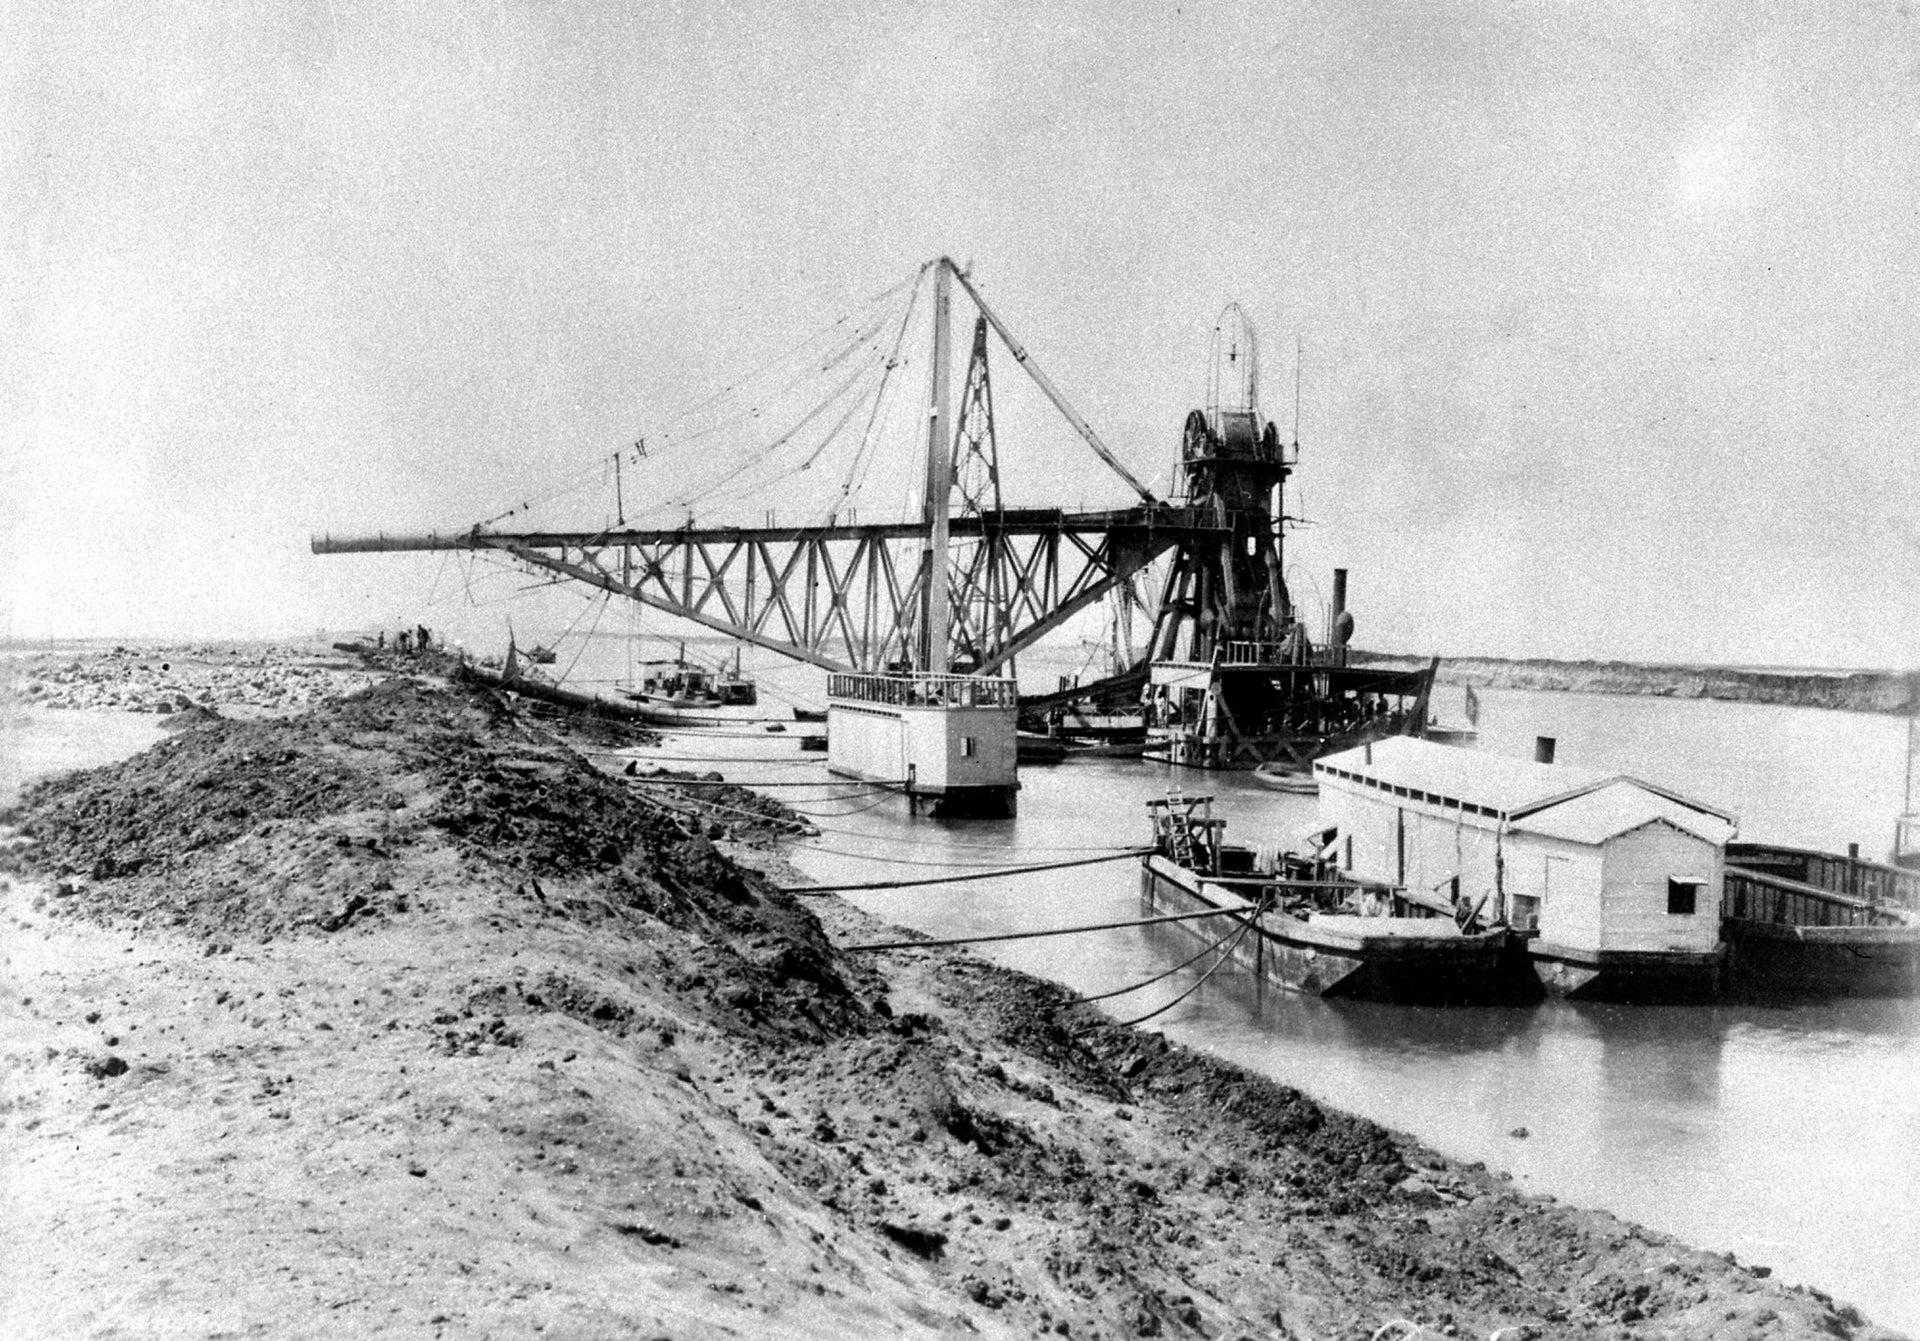 The digging of the Suez Canal in Egypt in 1869.